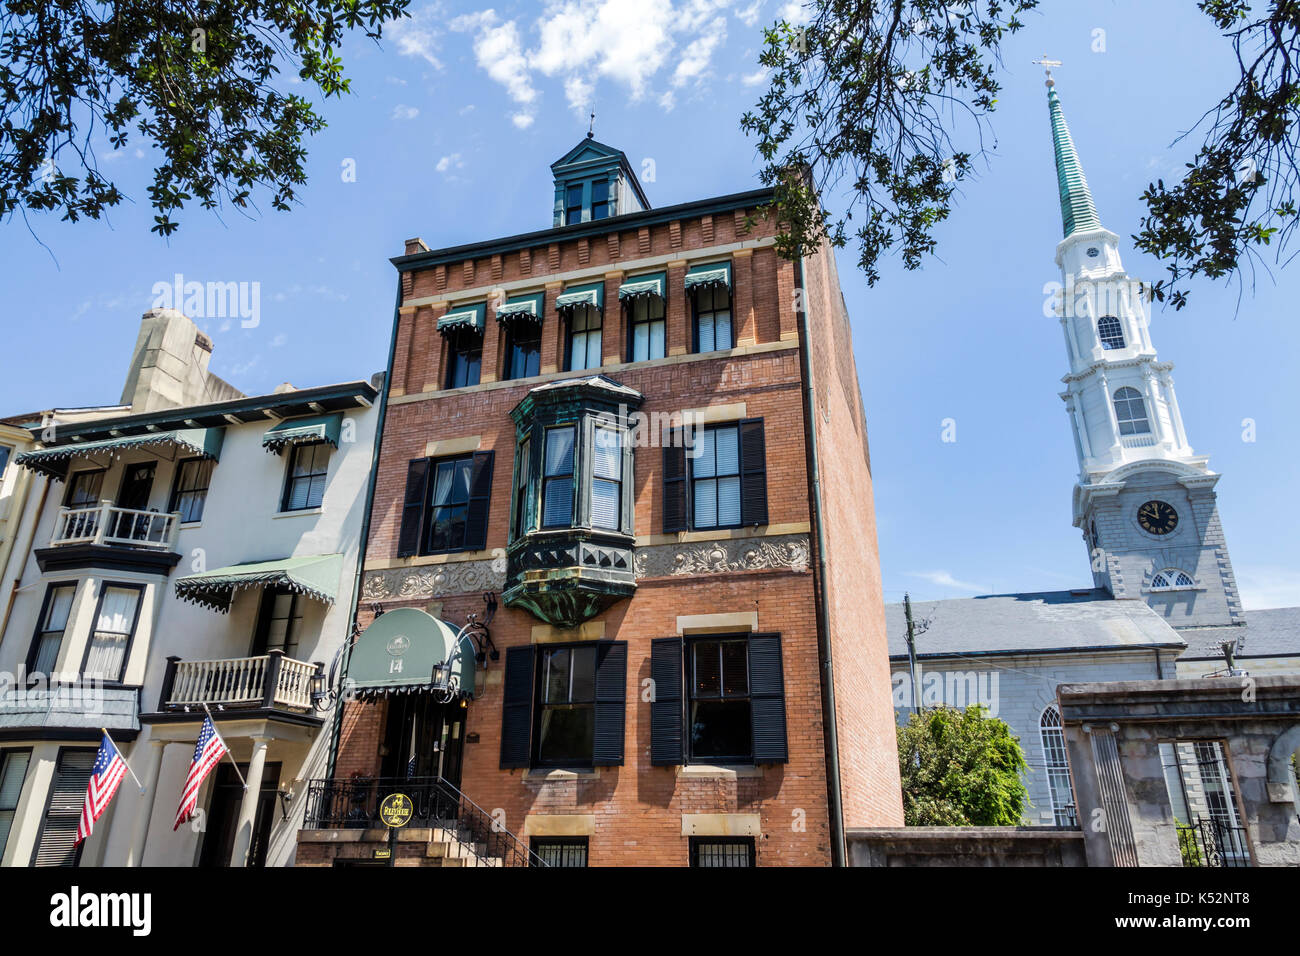 Savannah Georgia historic district Chippewa Square Foley House Inn bed and breakfast haunted house exterior Independent - Stock Image